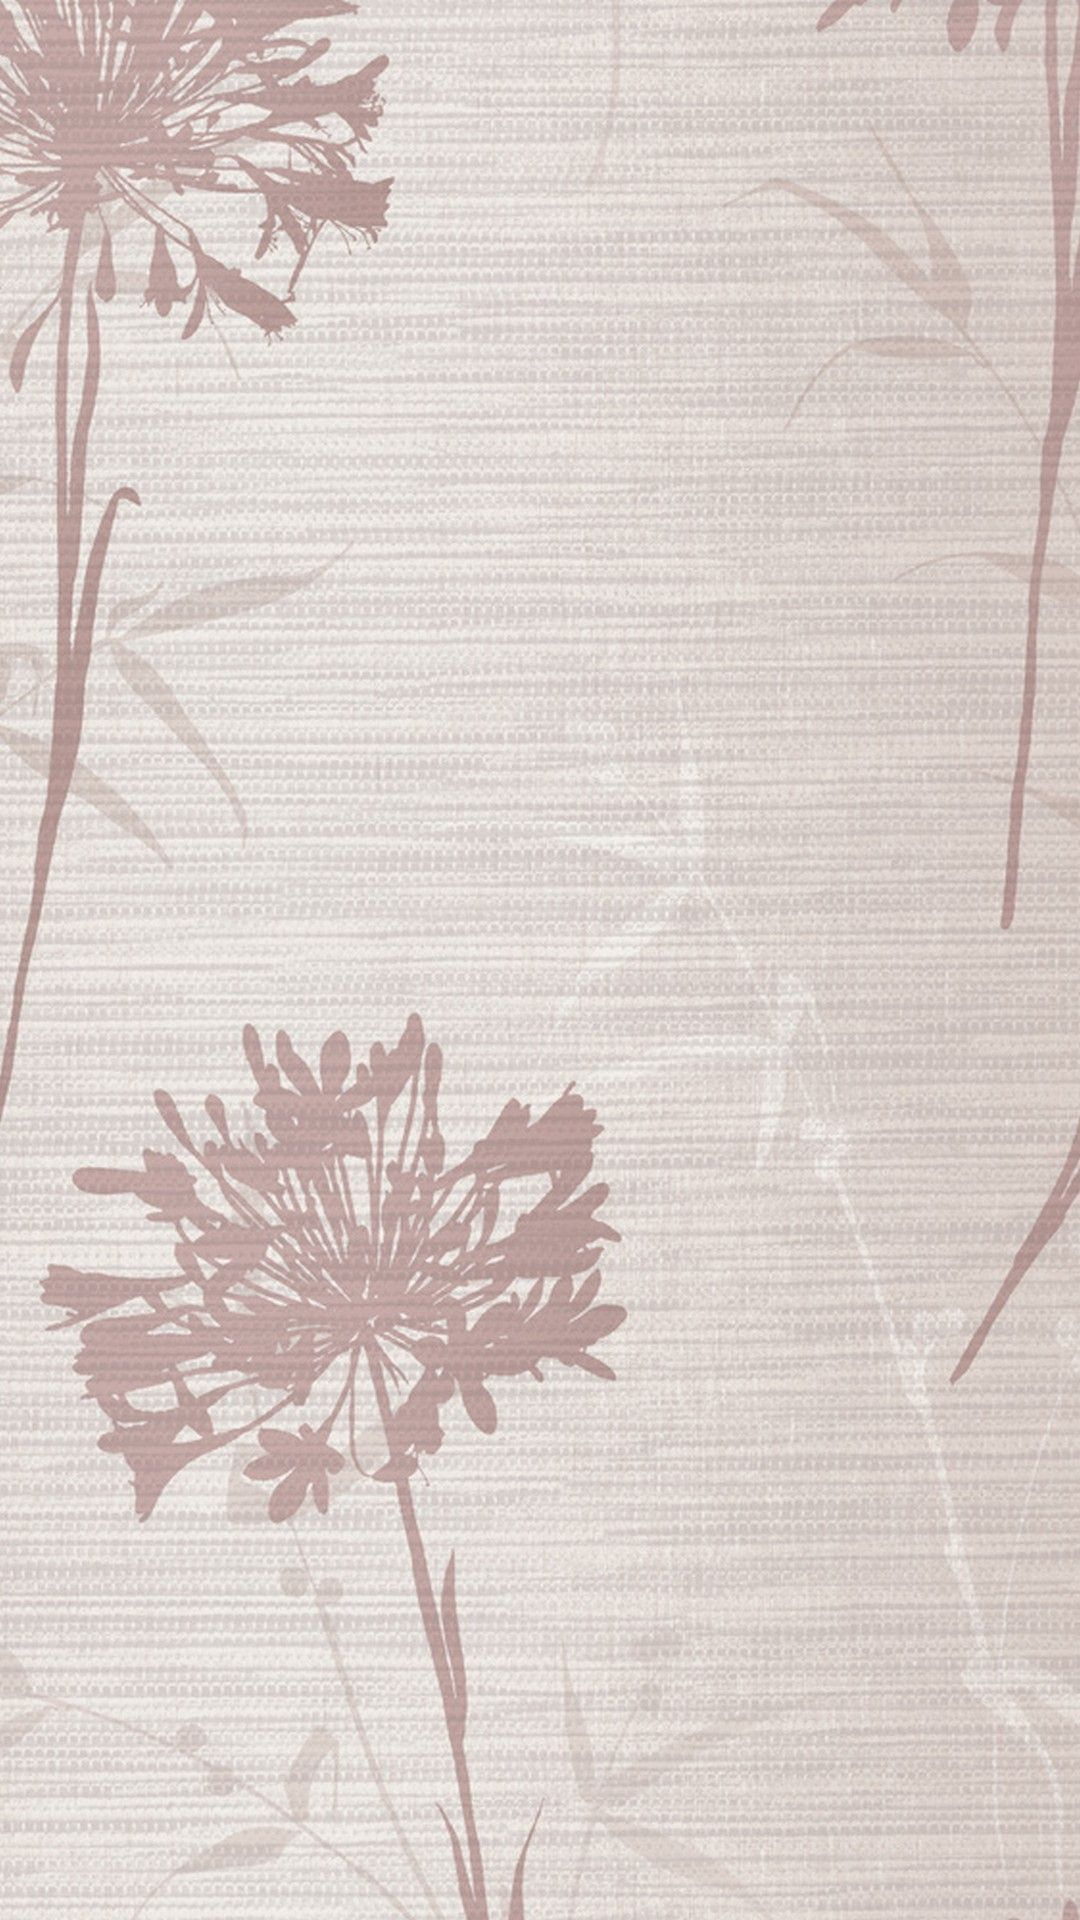 Rose Gold Pink And Grey Wallpaper Iphone In 2020 Grey Wallpaper Iphone Rose Gold Wallpaper Iphone Rose Gold Wallpaper